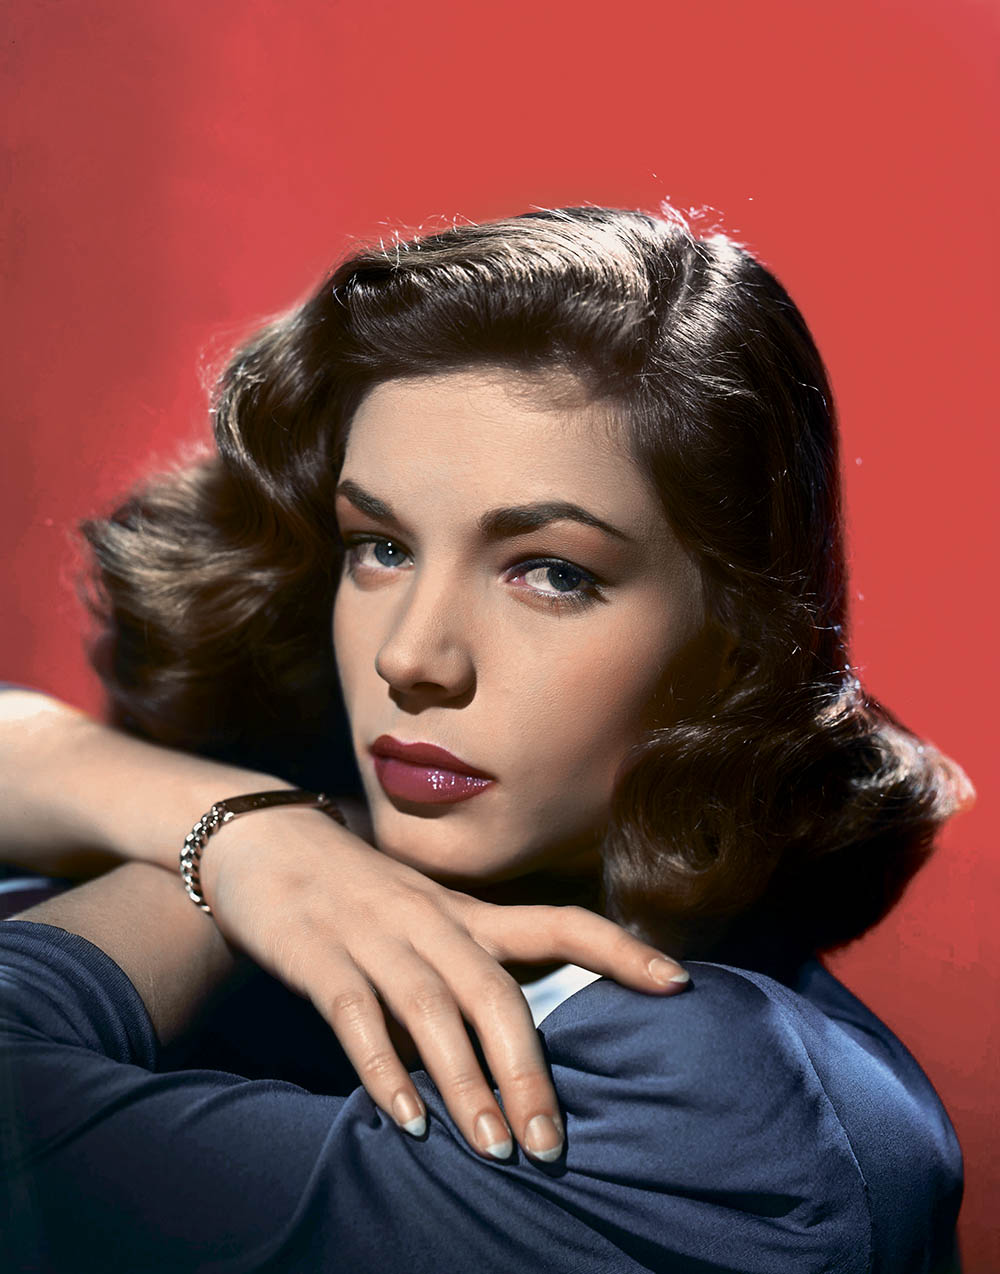 Close-up portrait of Lauren Bacall Restricted to editorial use related to the film or the individuals involved (producers, directors, authors, actors, etc.)